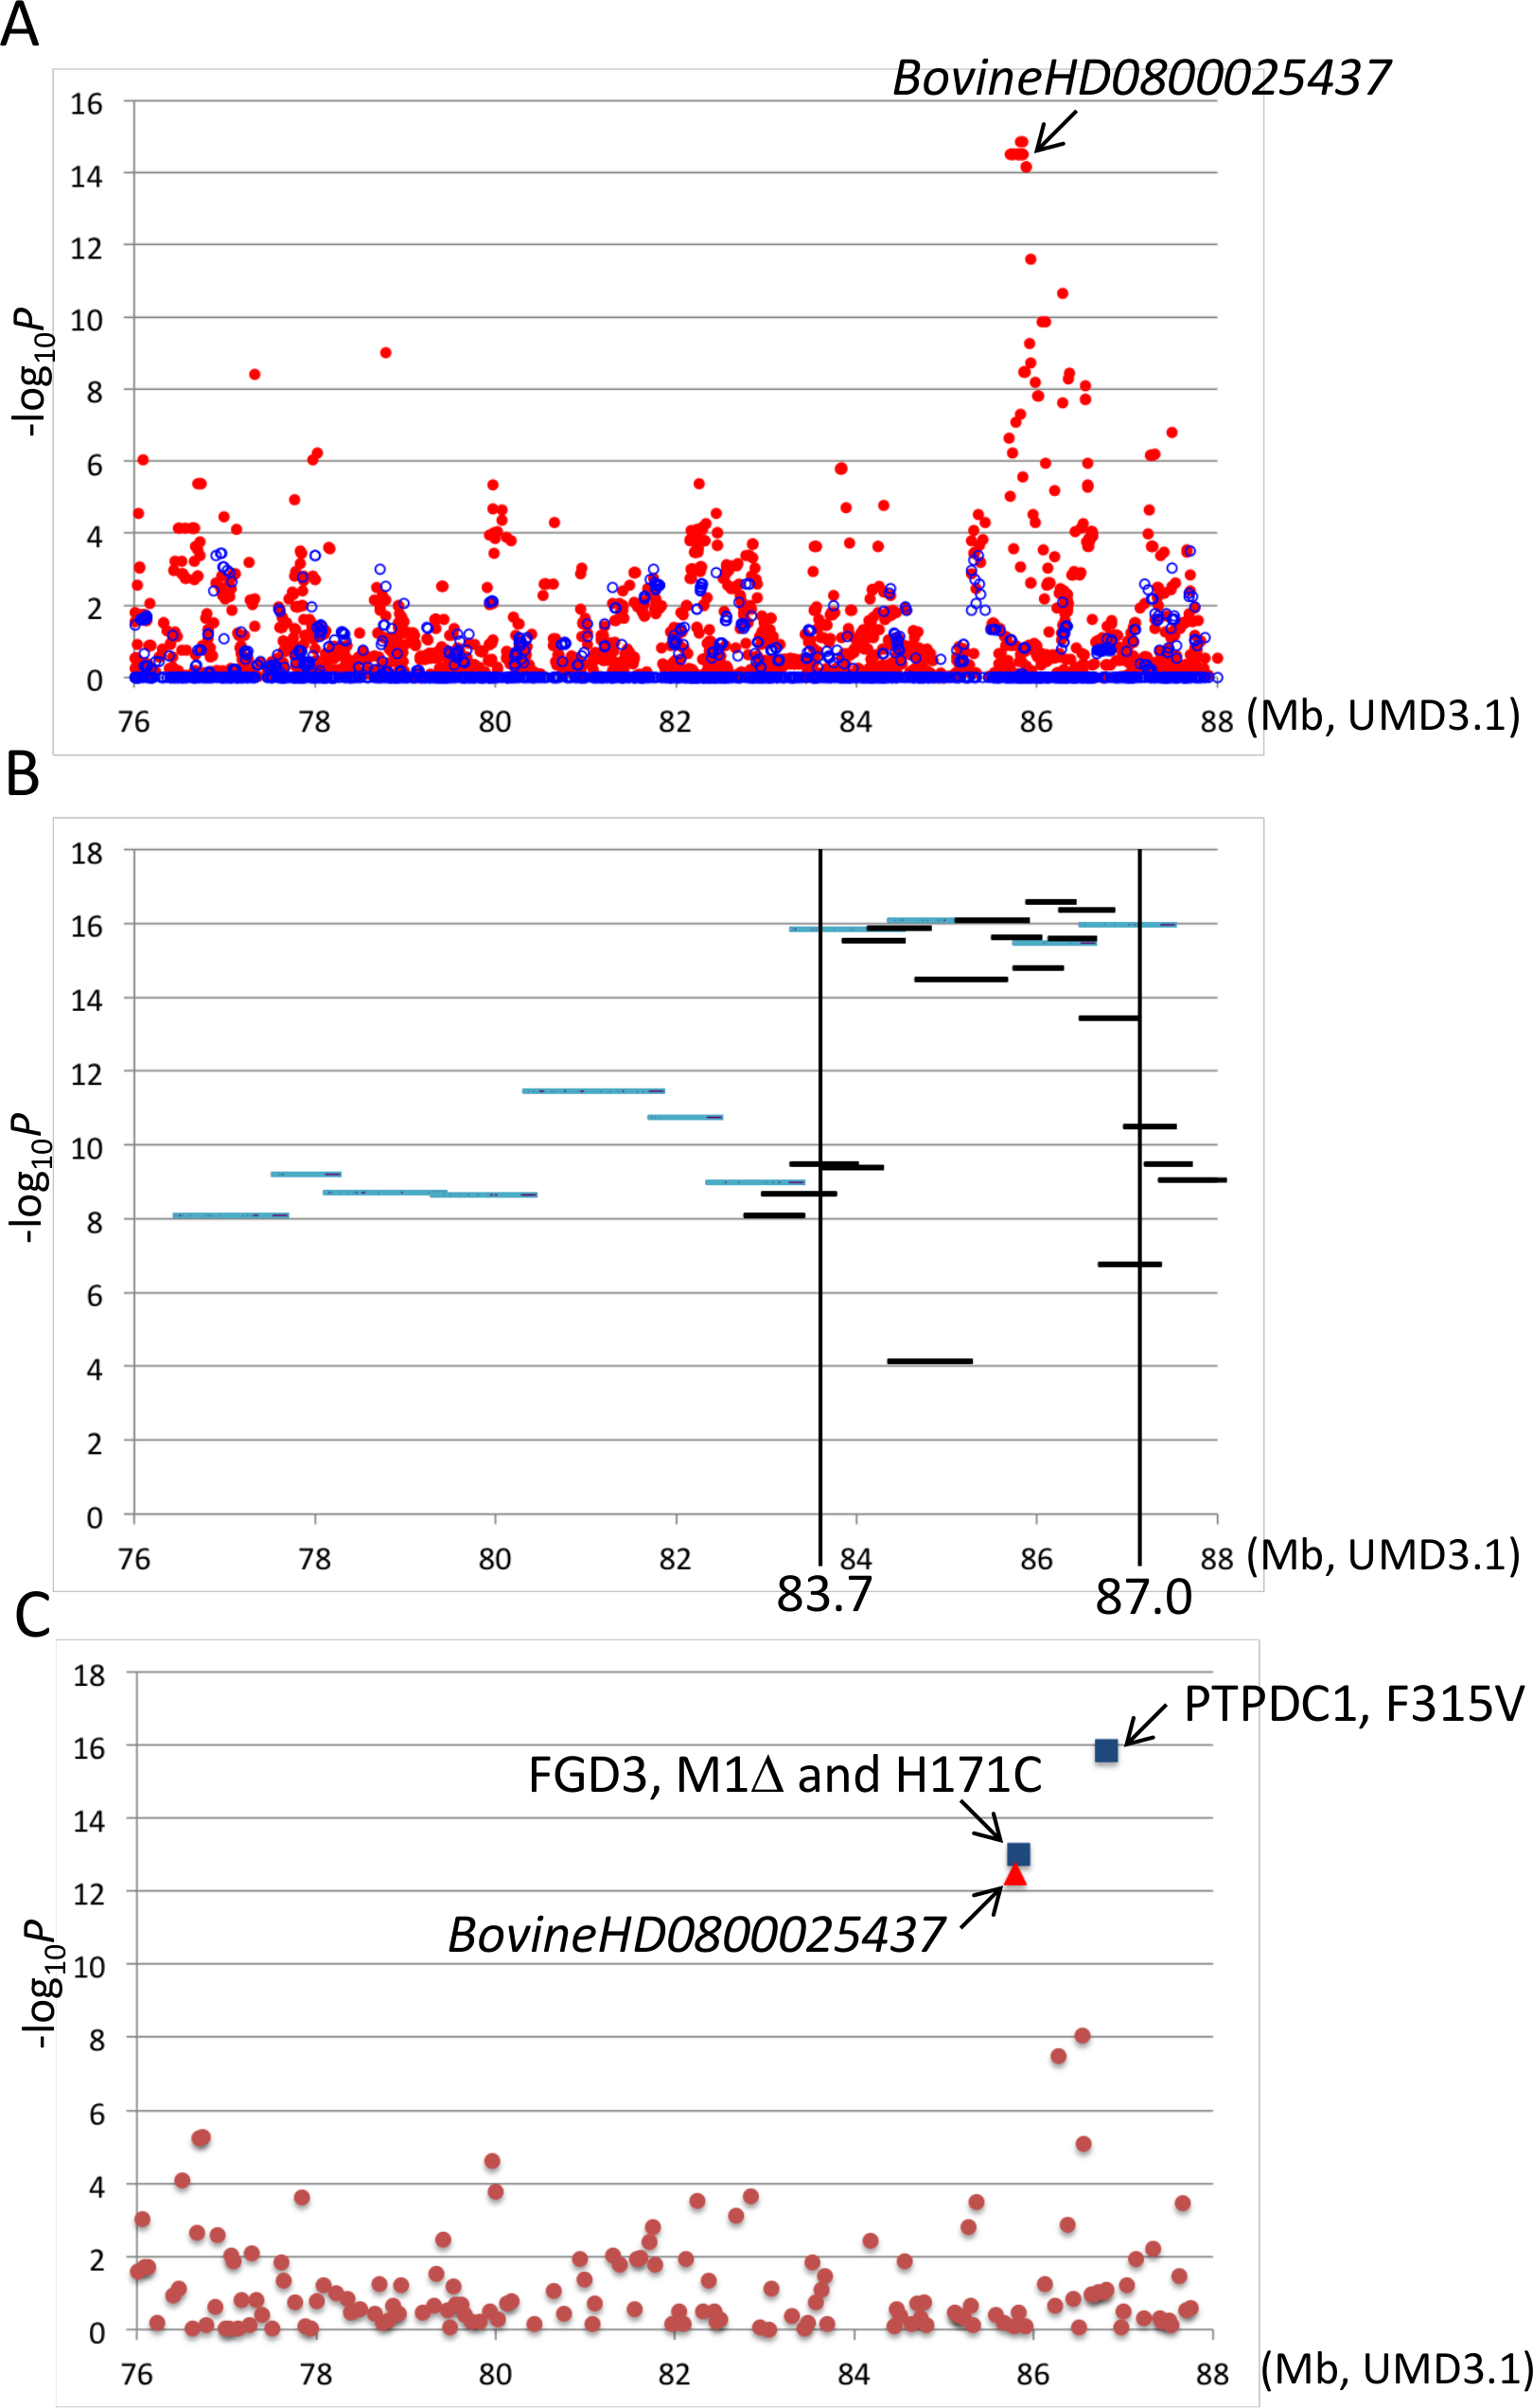 Association analyses using imputed BovineHD genotypes (A), segments of the identical-by-descent (IBD) <i>Q</i> haplotype (B), and candidate causative variations (C).